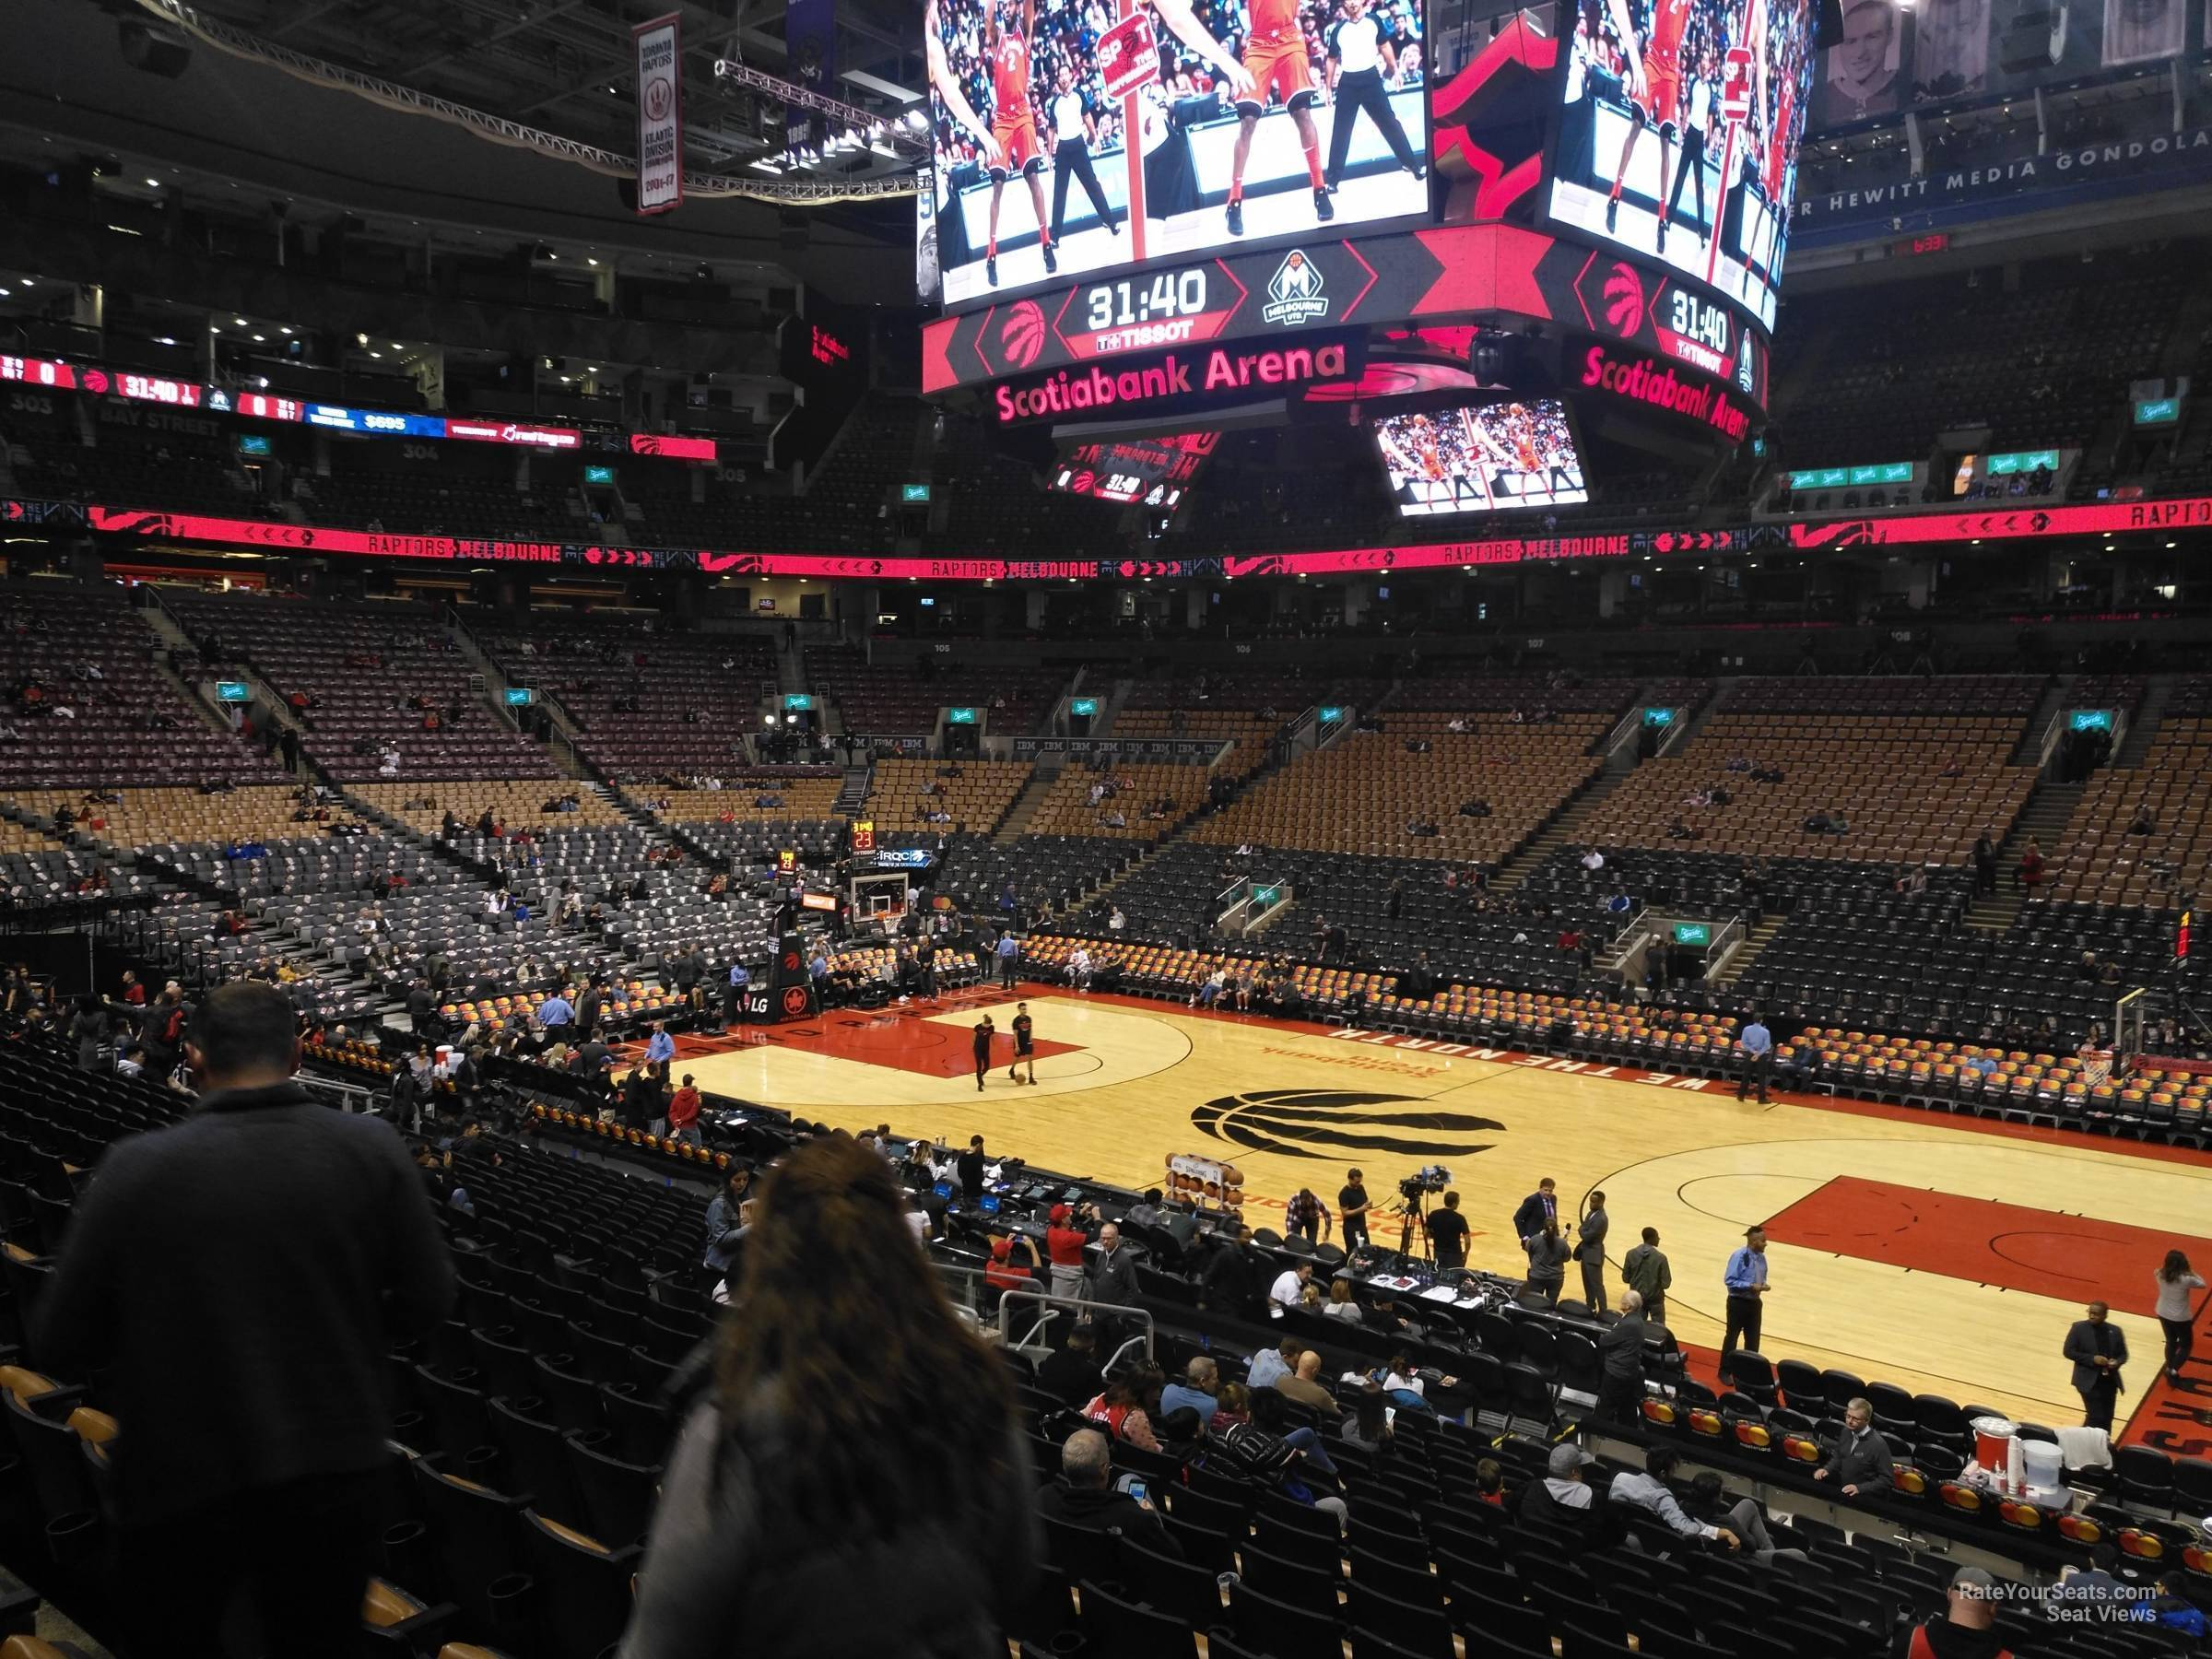 Toronto Raptors Seat View for Scotiabank Arena Section 117, Row 28